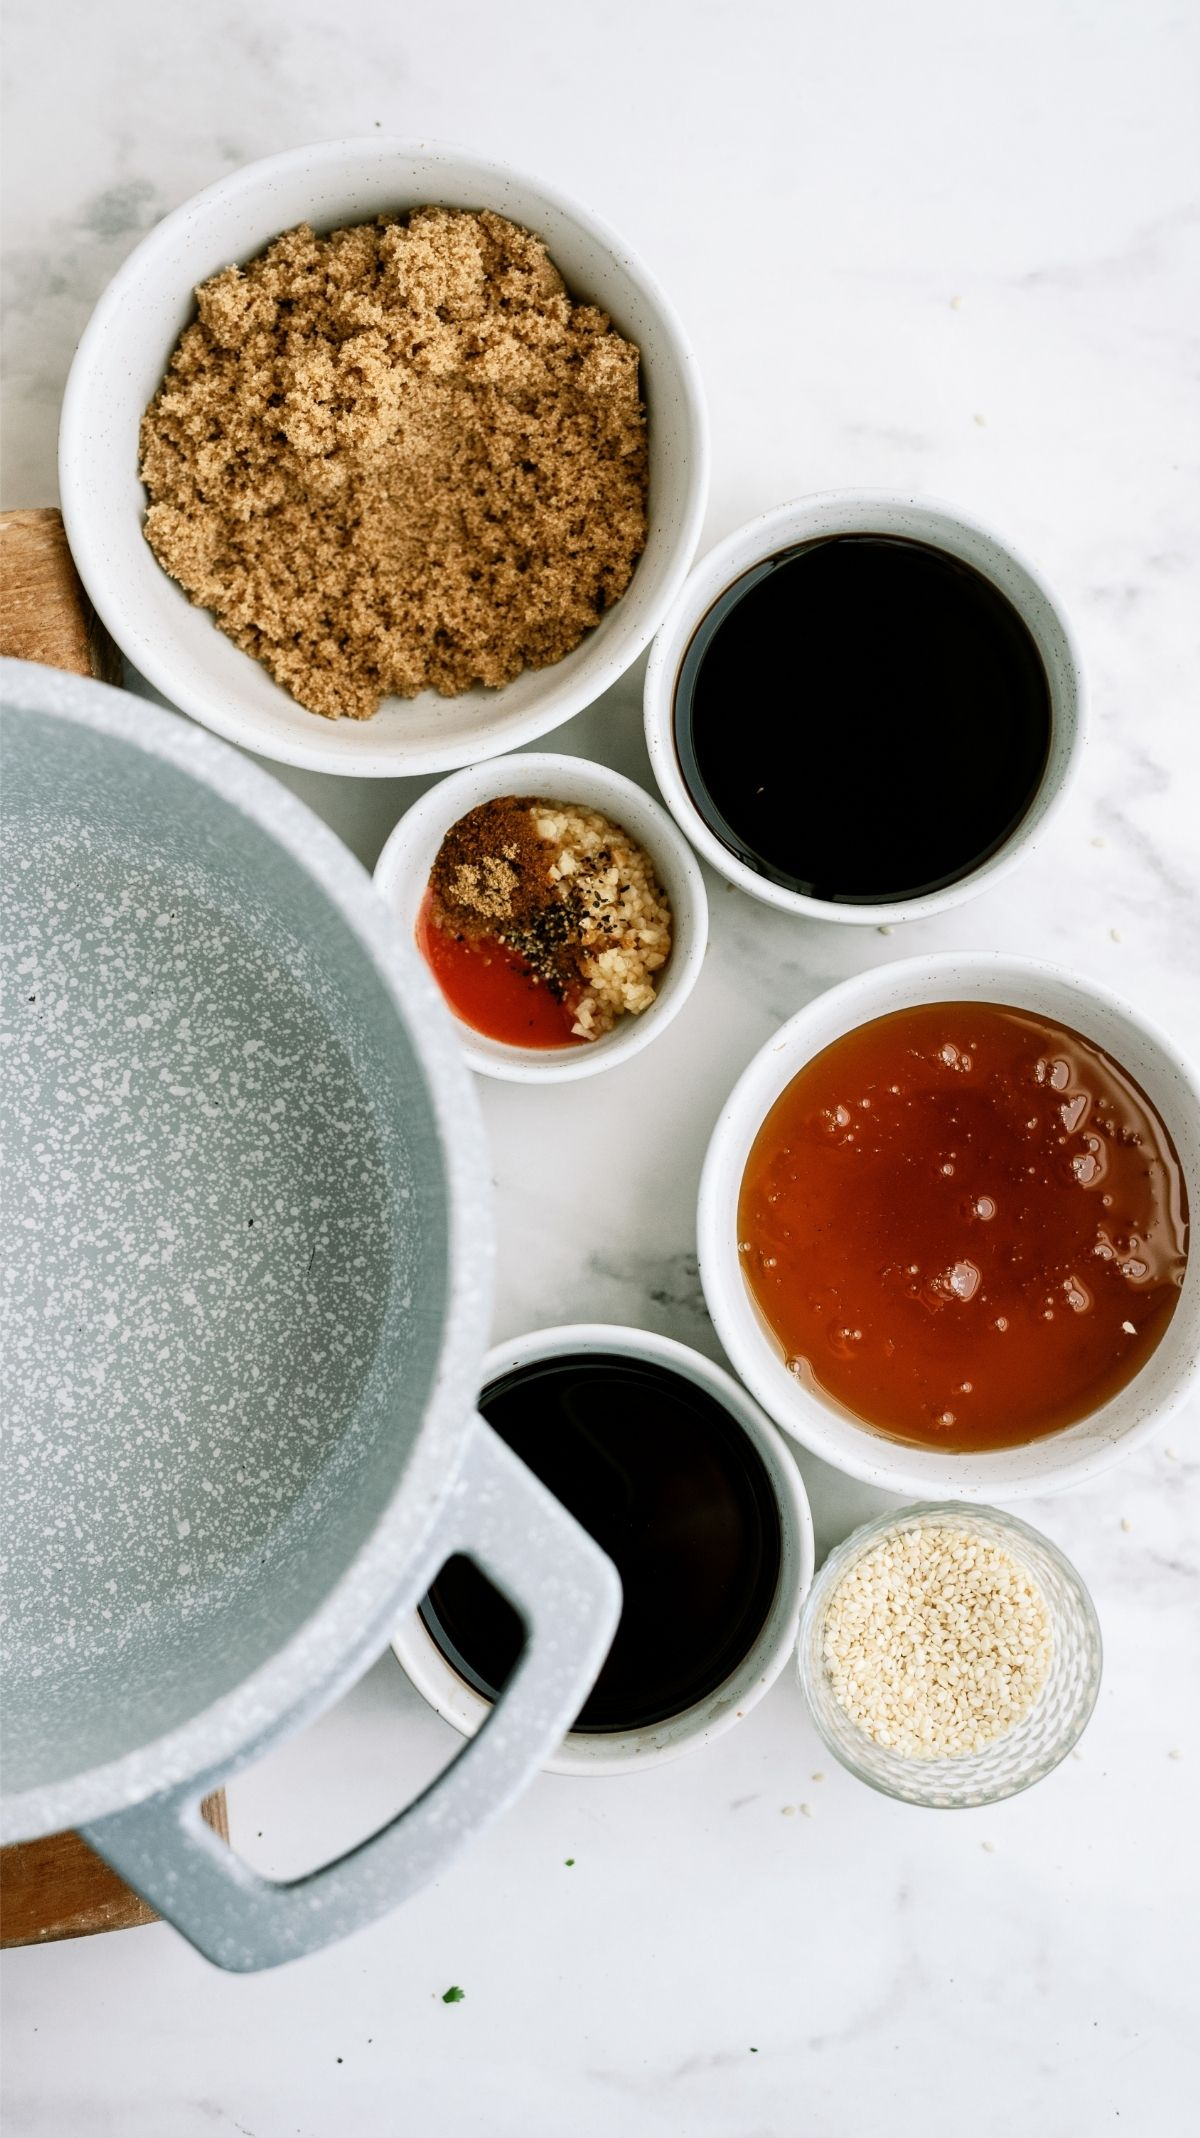 Ingredients for Slow Cooker Sticky Chicken Wings Recipe